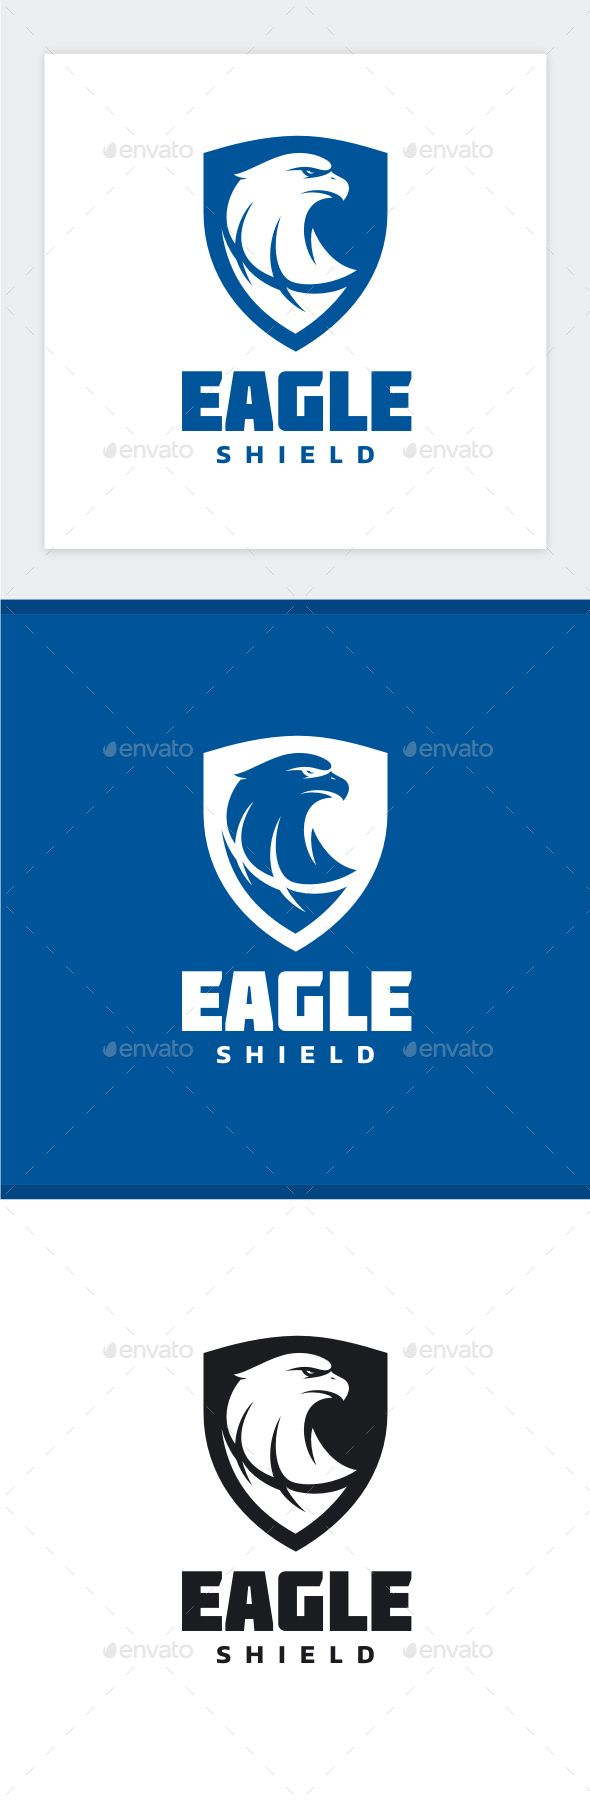 Eagle shield logo psd template vector logo hawk symbol vector eagle shield logo psd template vector logo hawk symbol vector maxwellsz